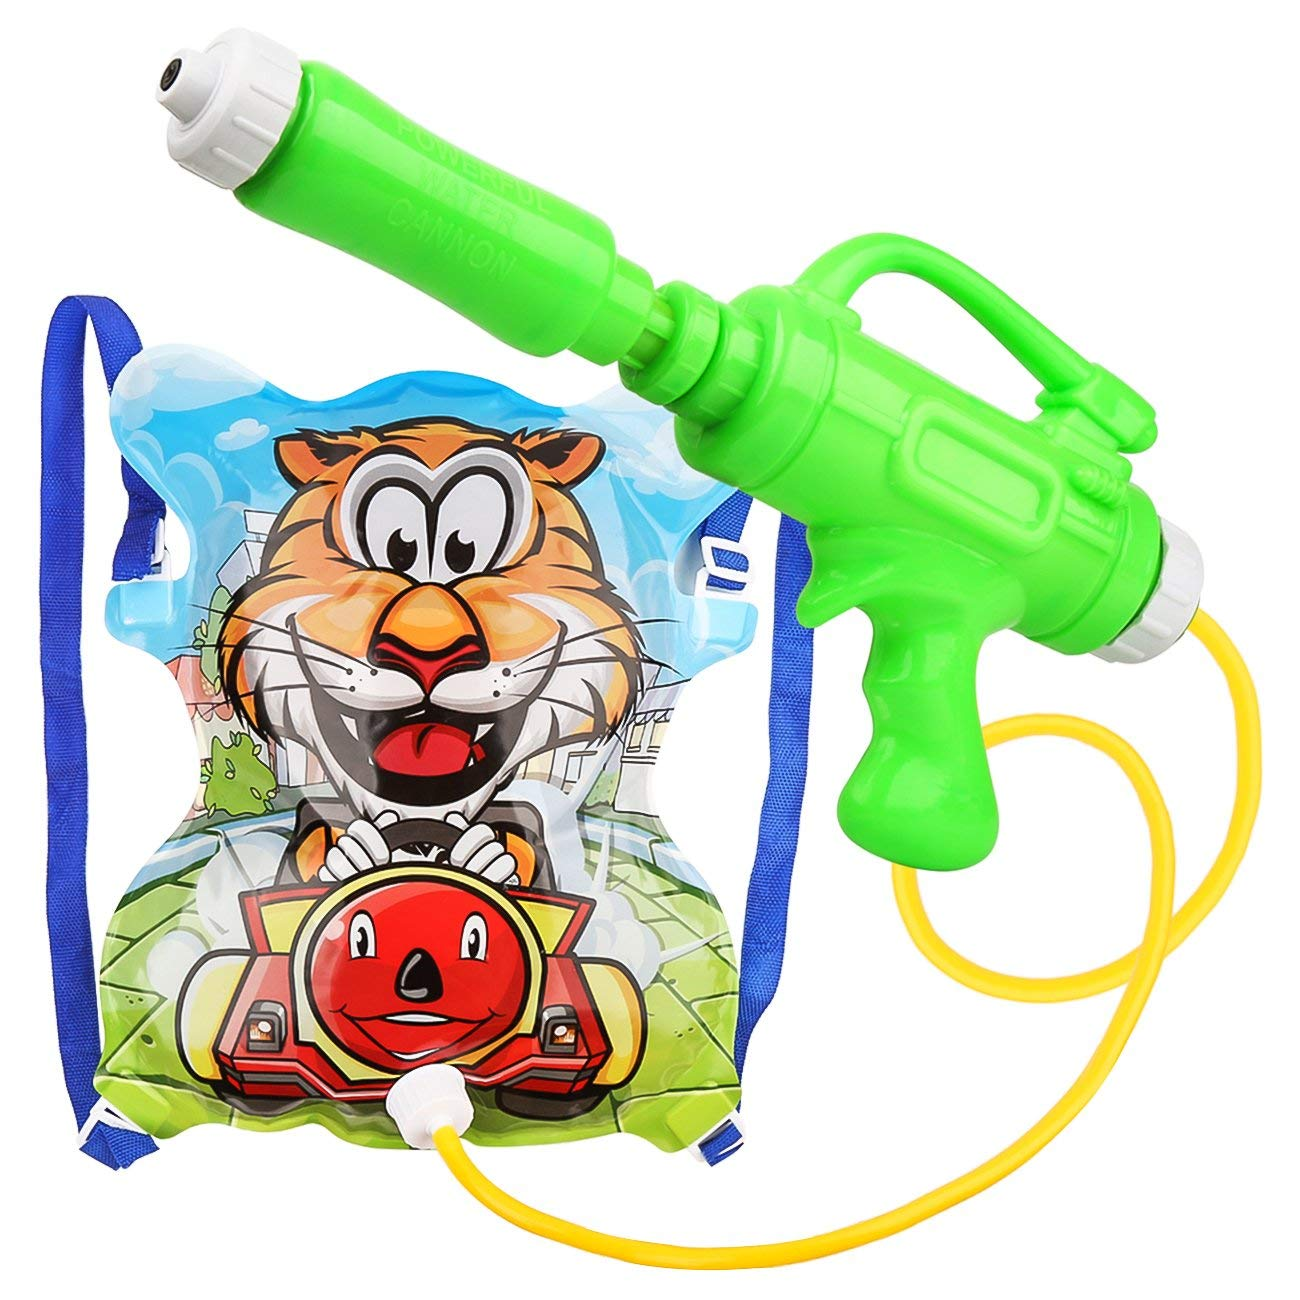 Backpack Water Gun , Water Blaster, Children Outdoor Water Toy, Beach Toy, Summer Toys, Swimming Pool Toy, Bath Toy for Kids Gifts